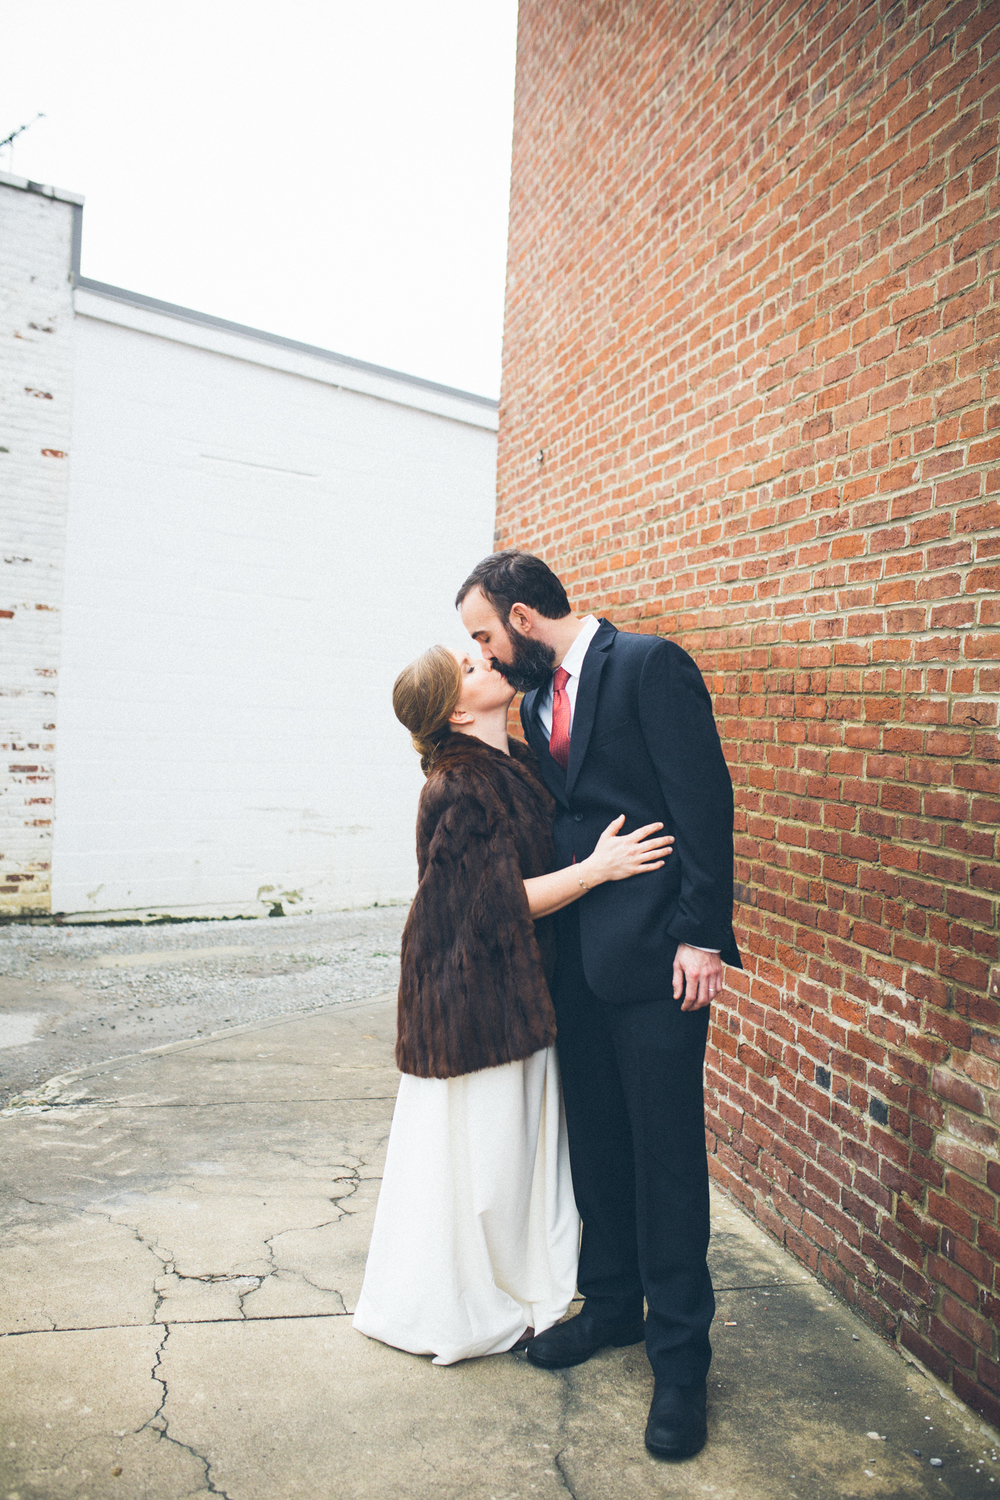 Megan & Josh Wedding Website 2016 (25 of 141).jpg